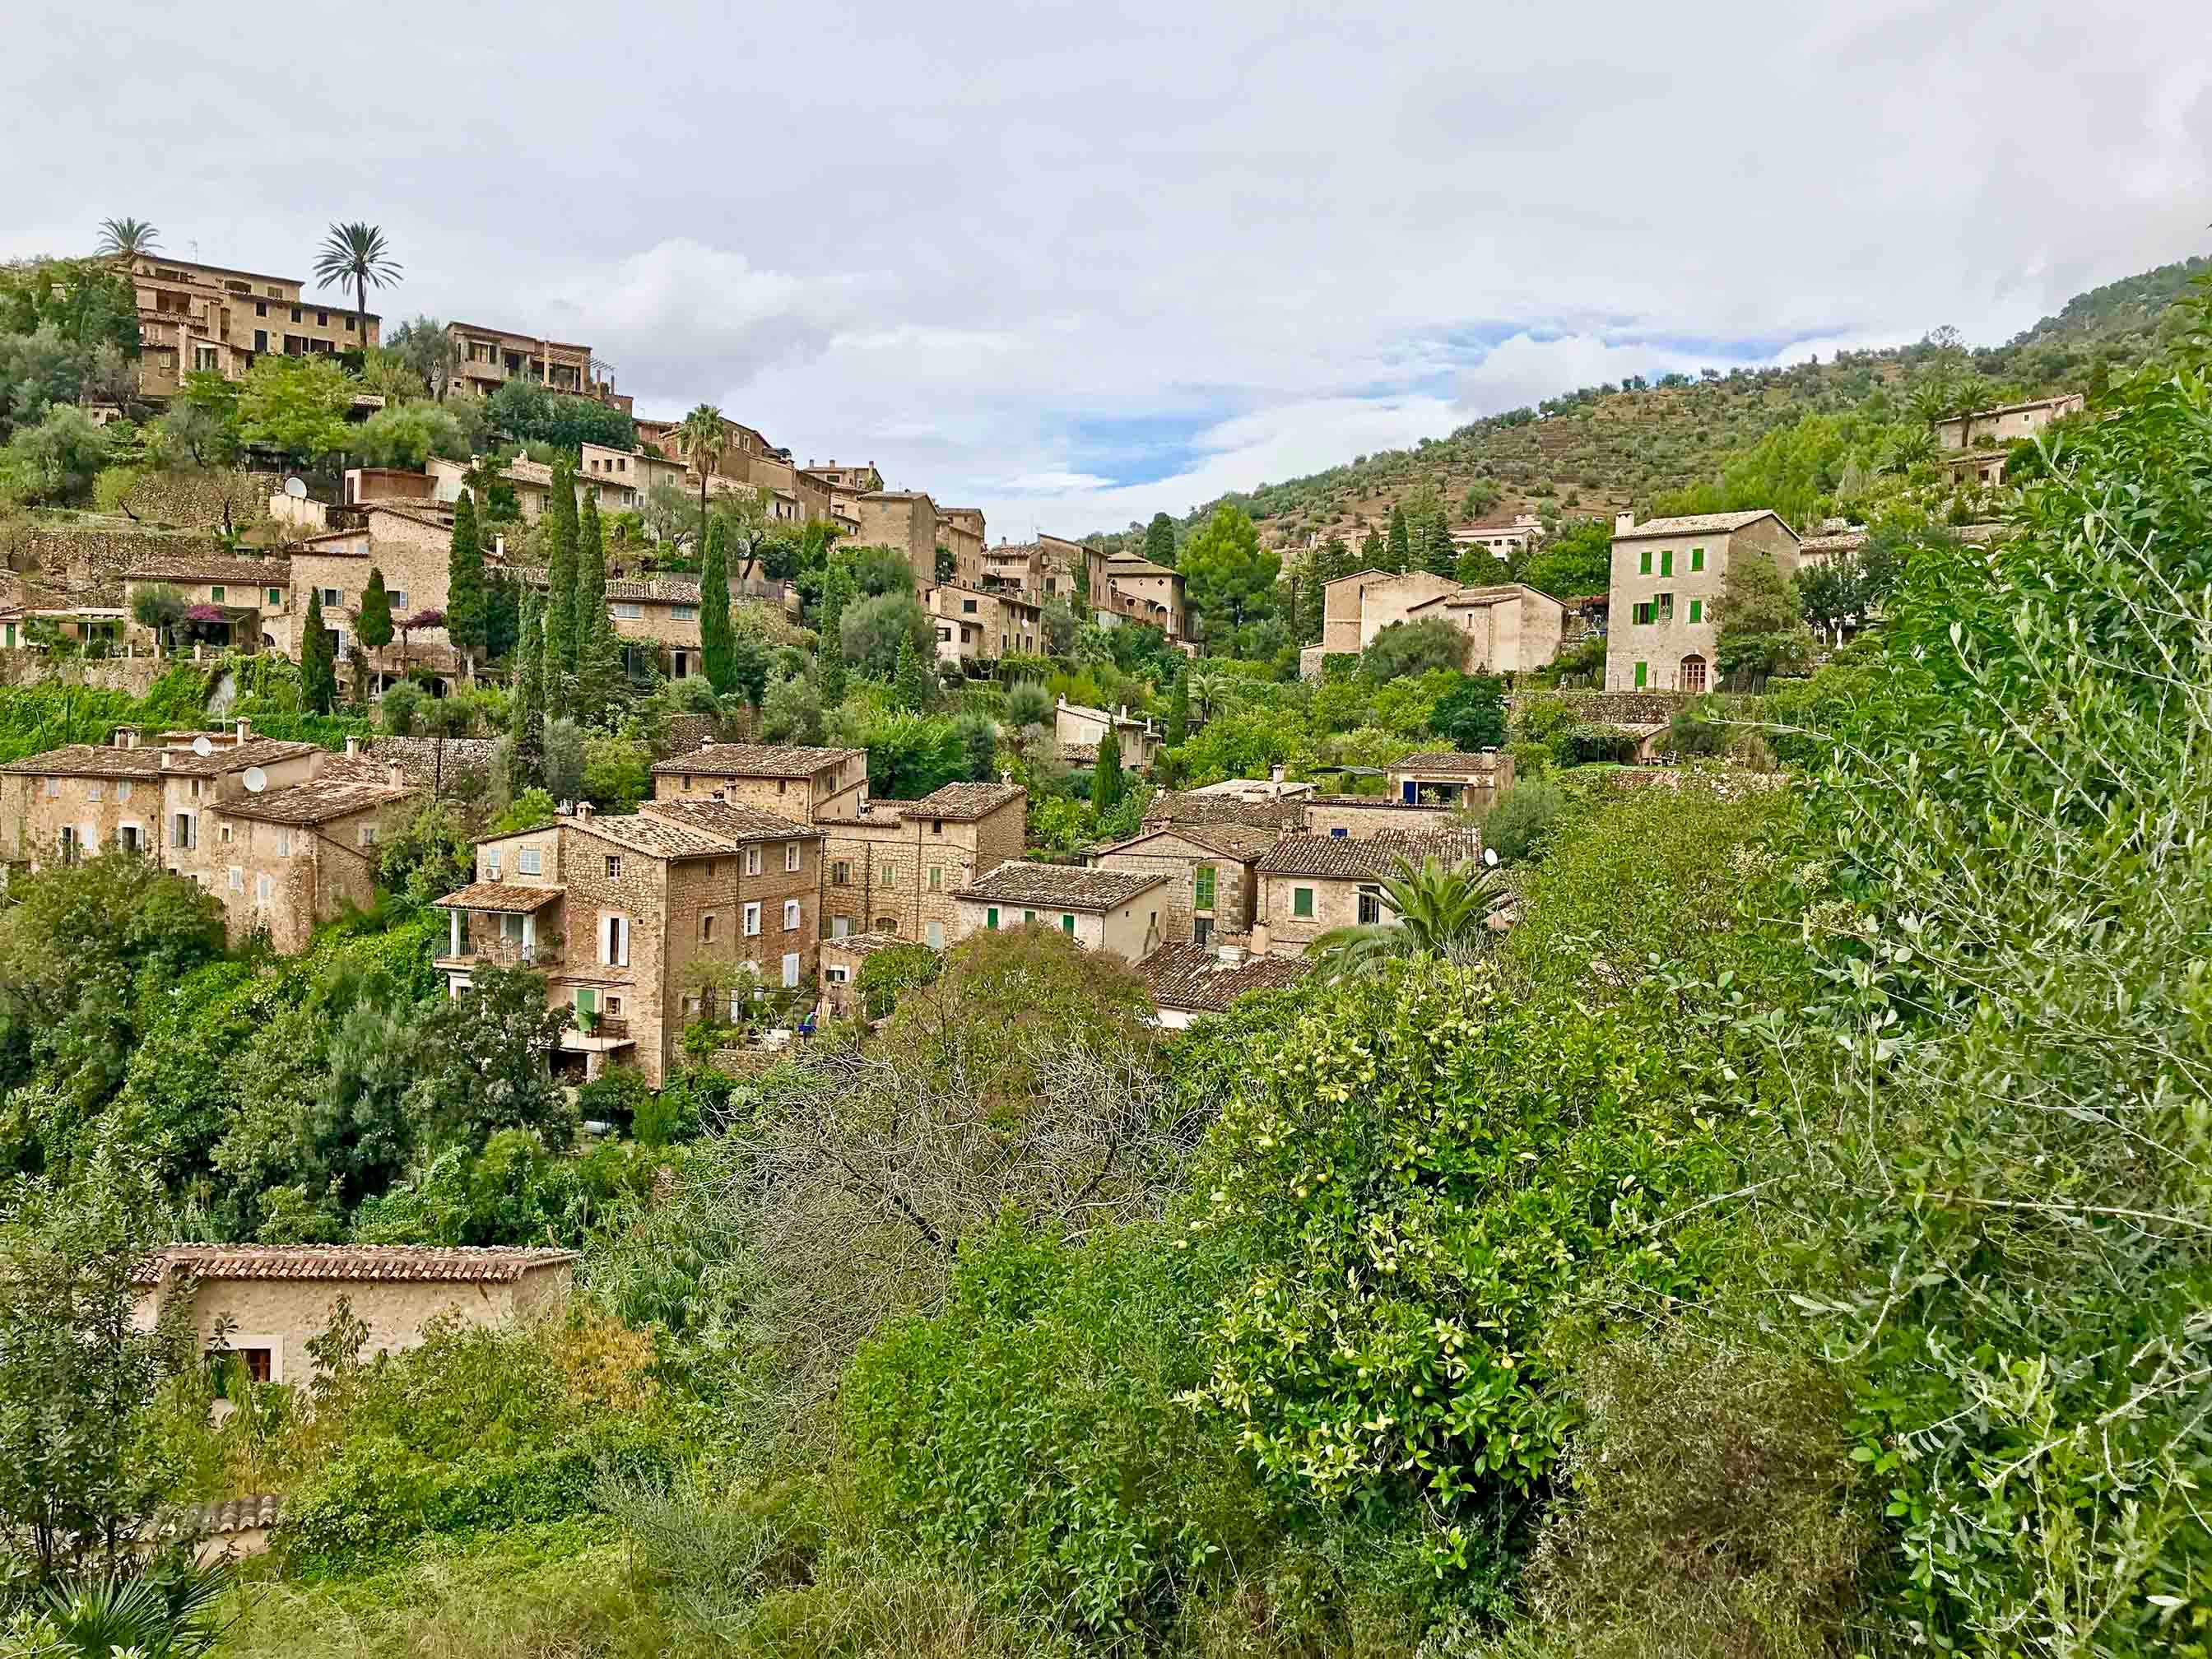 Deia Mallorcan Village in the green mountains